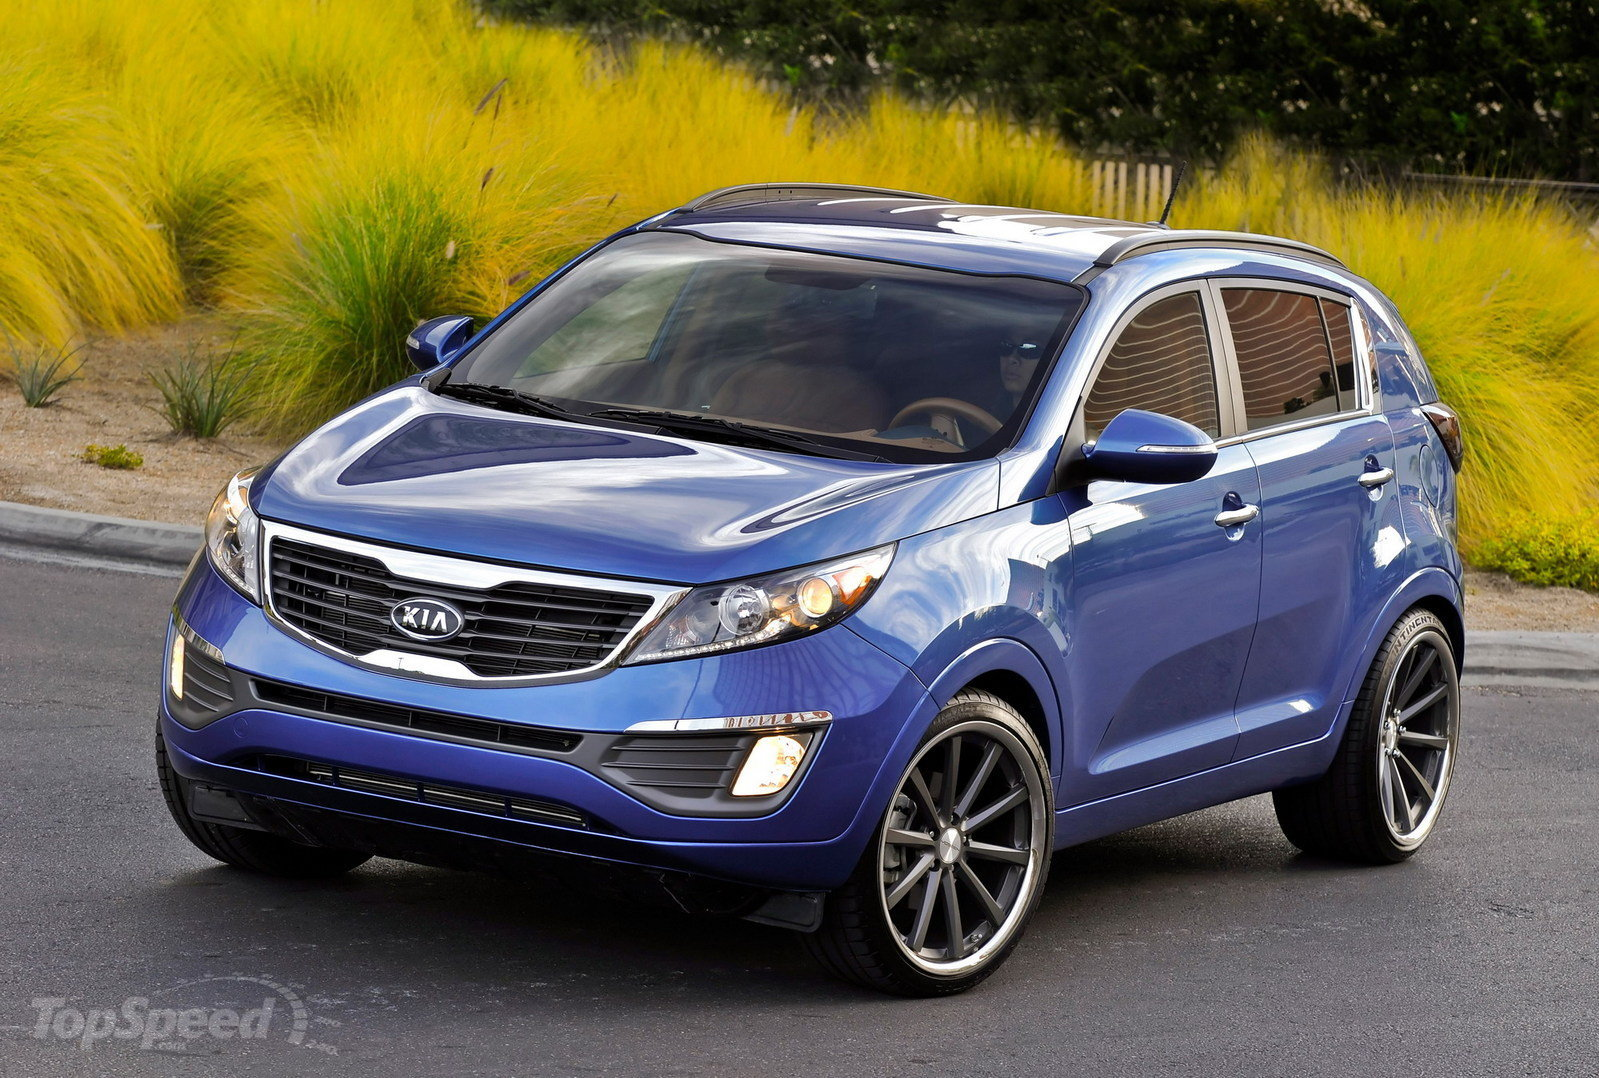 Kia Sportage Blue HD Wallpaper Download